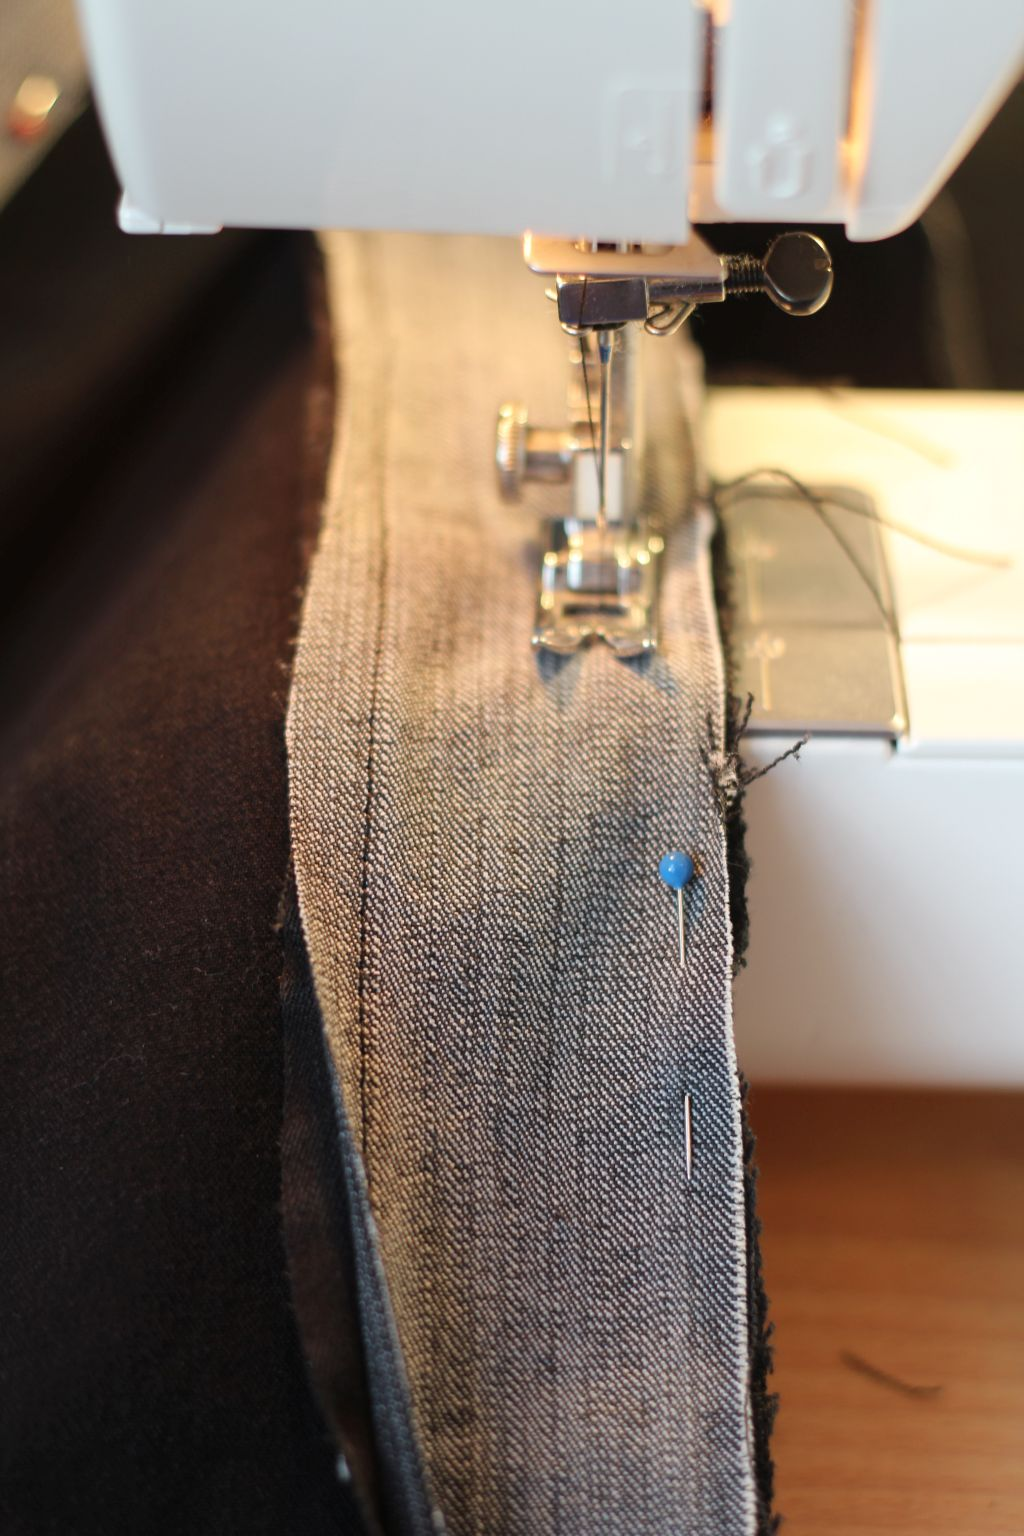 Sew strip to sides